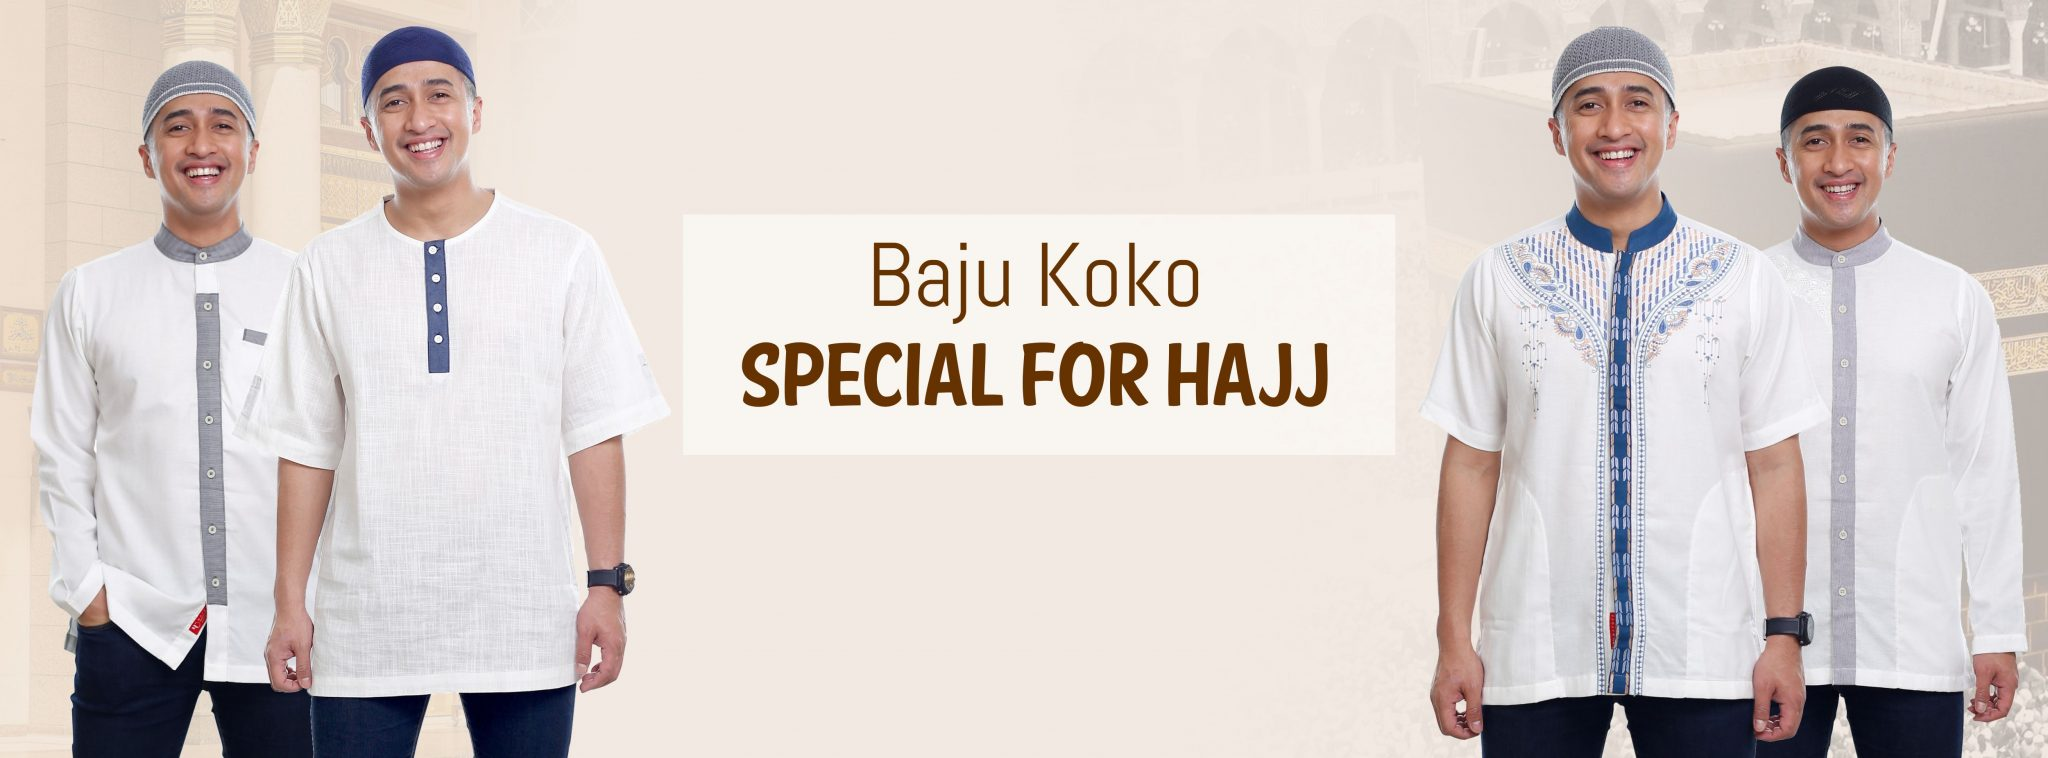 Koko Special For Hajj